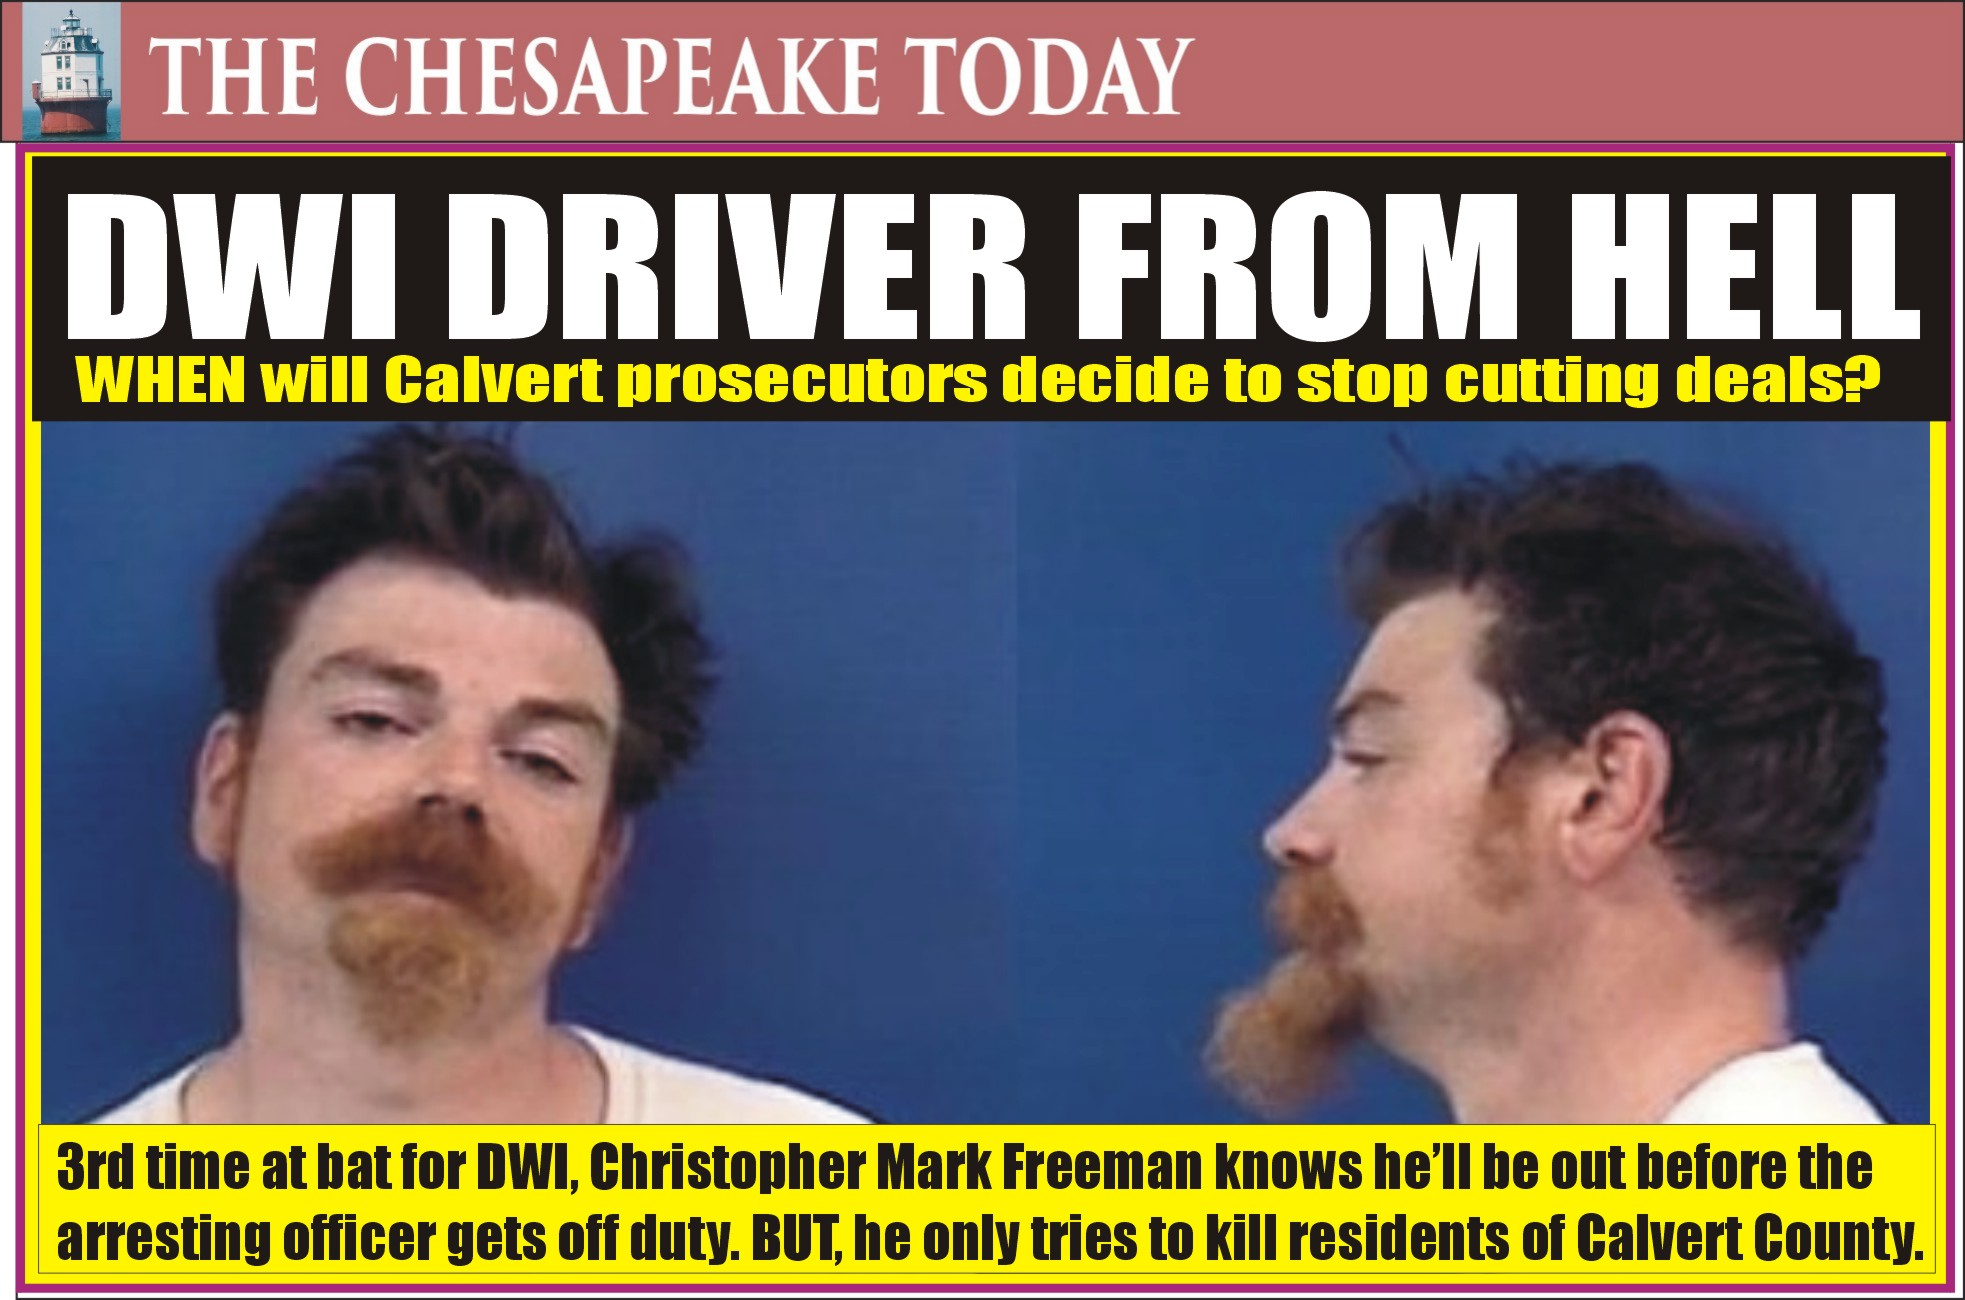 DWI HIT PARADE: DWI REPEAT OFFENDER – Third time Christopher Mark Freeman has been caught again; may have been DWI hundreds of times